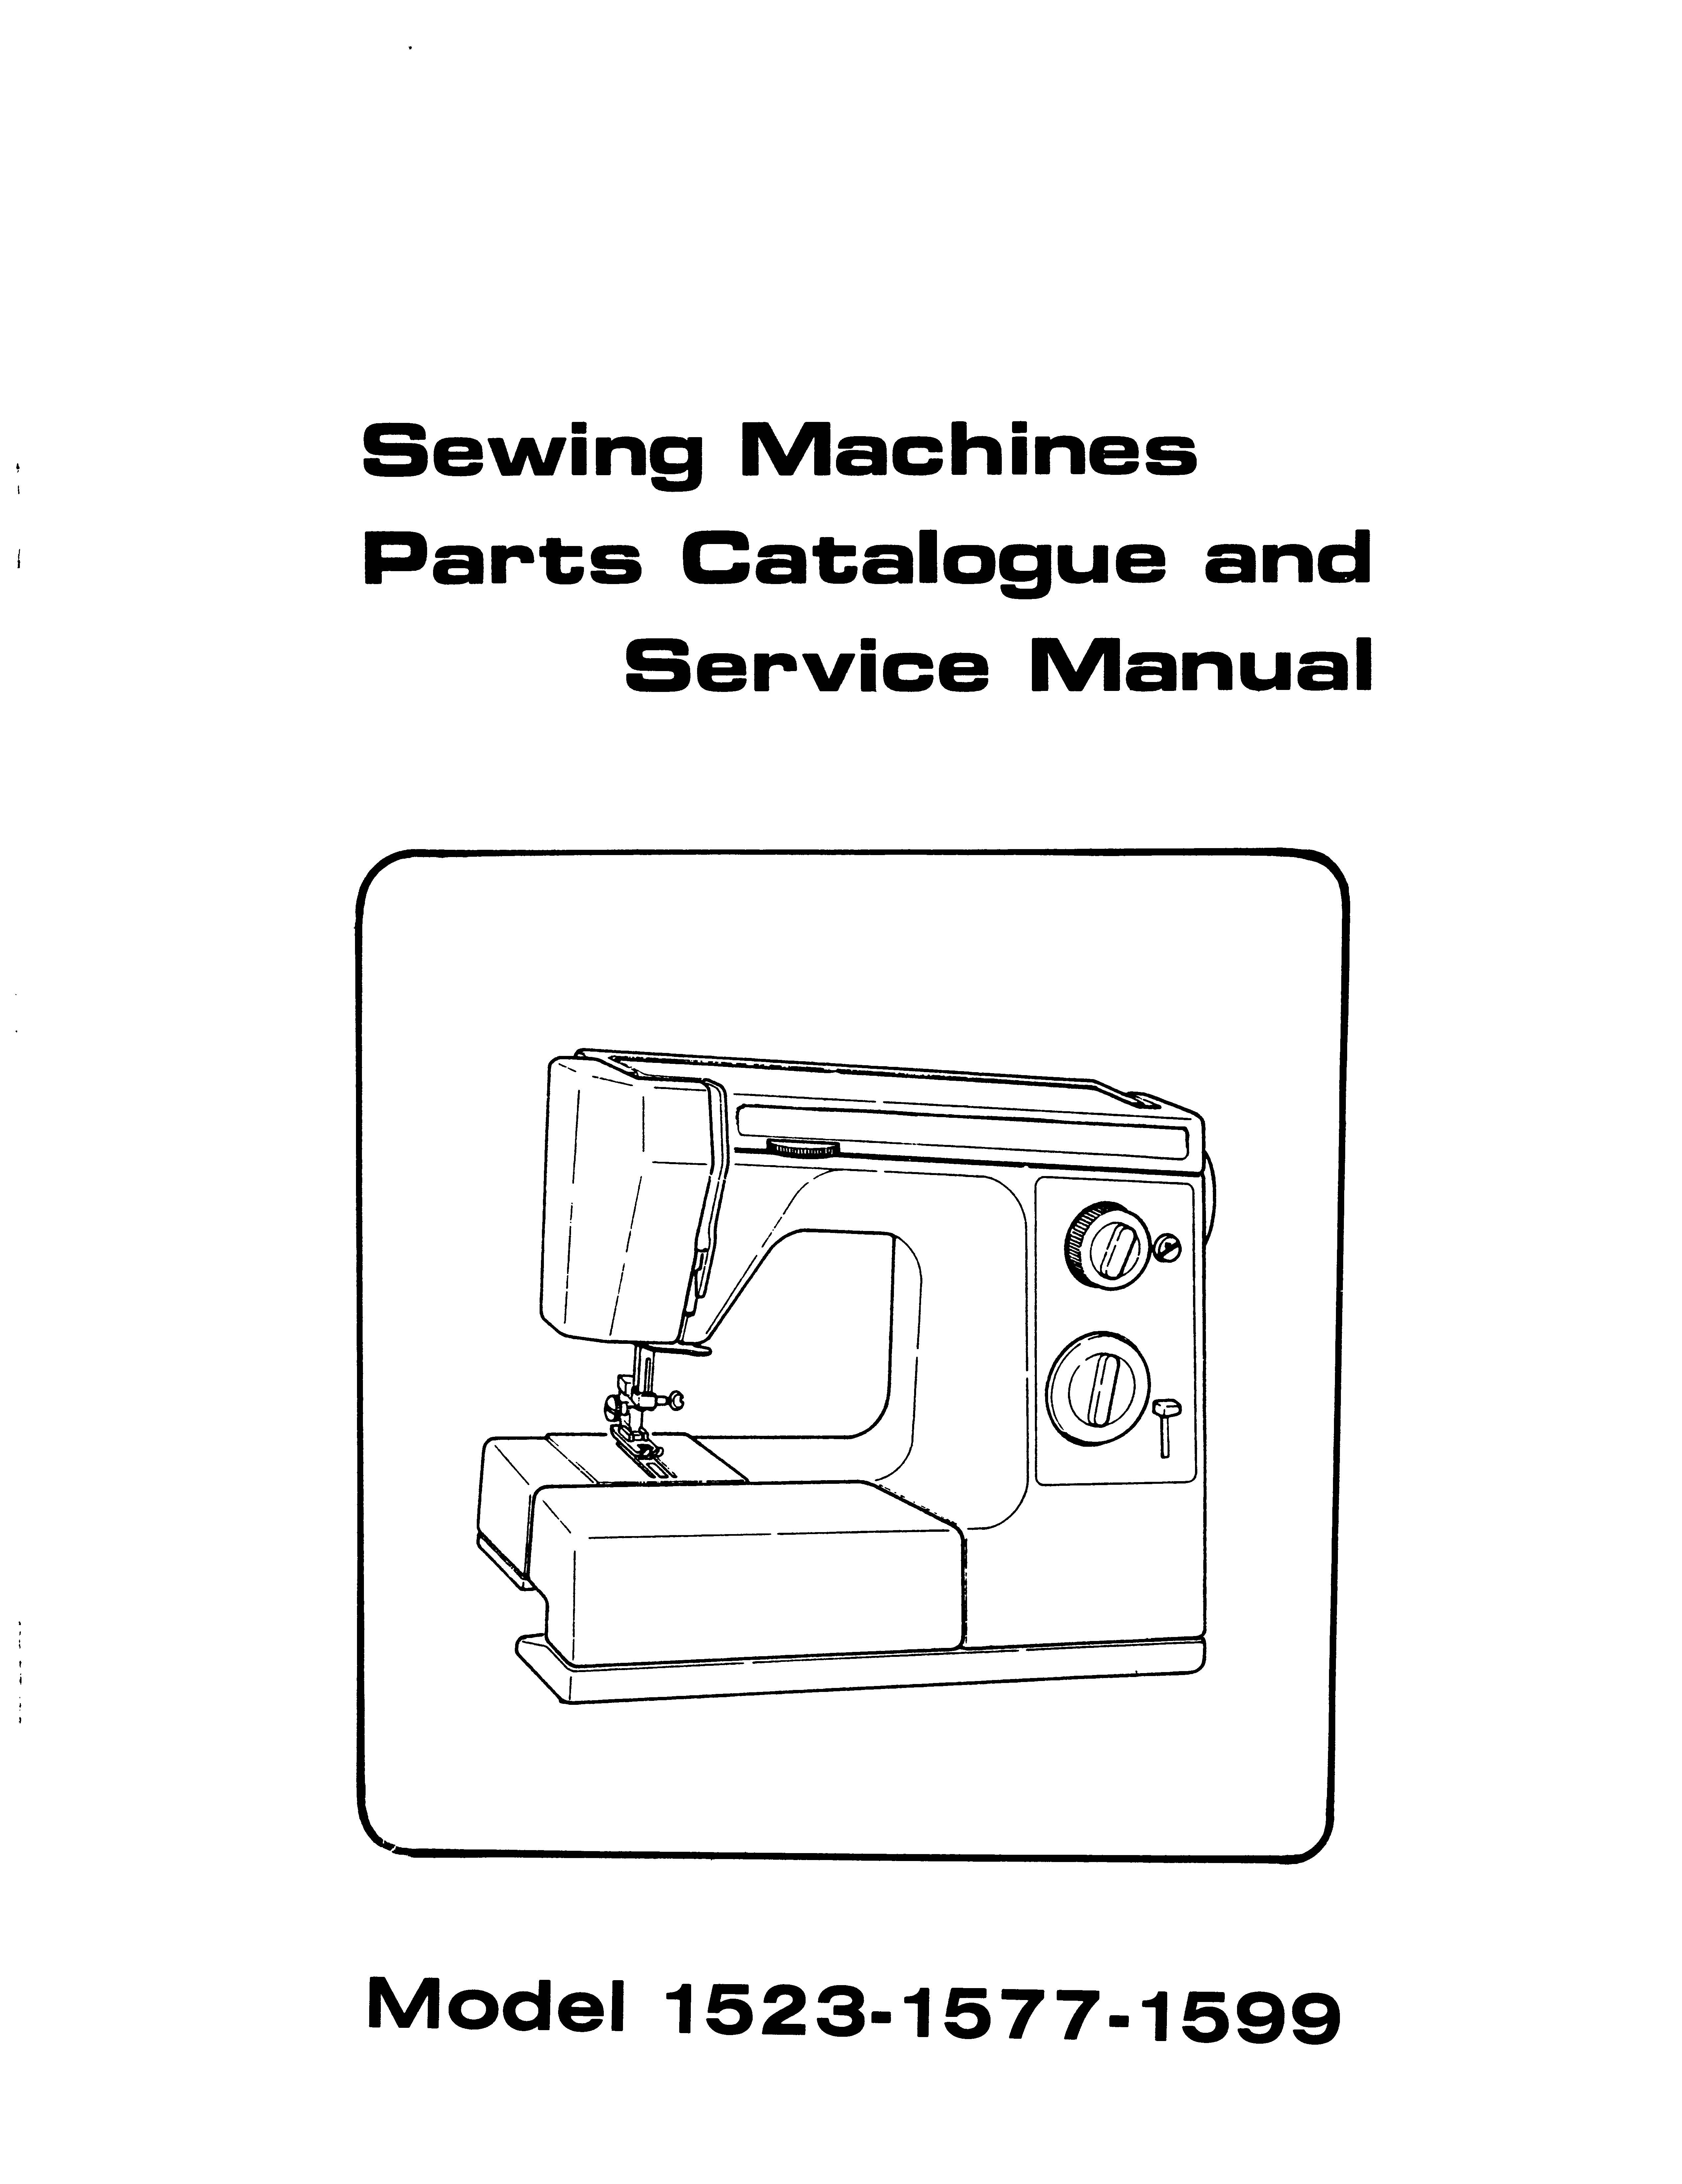 Service Manual & Parts List White 1523, 1577, 1599 Sewing Machine